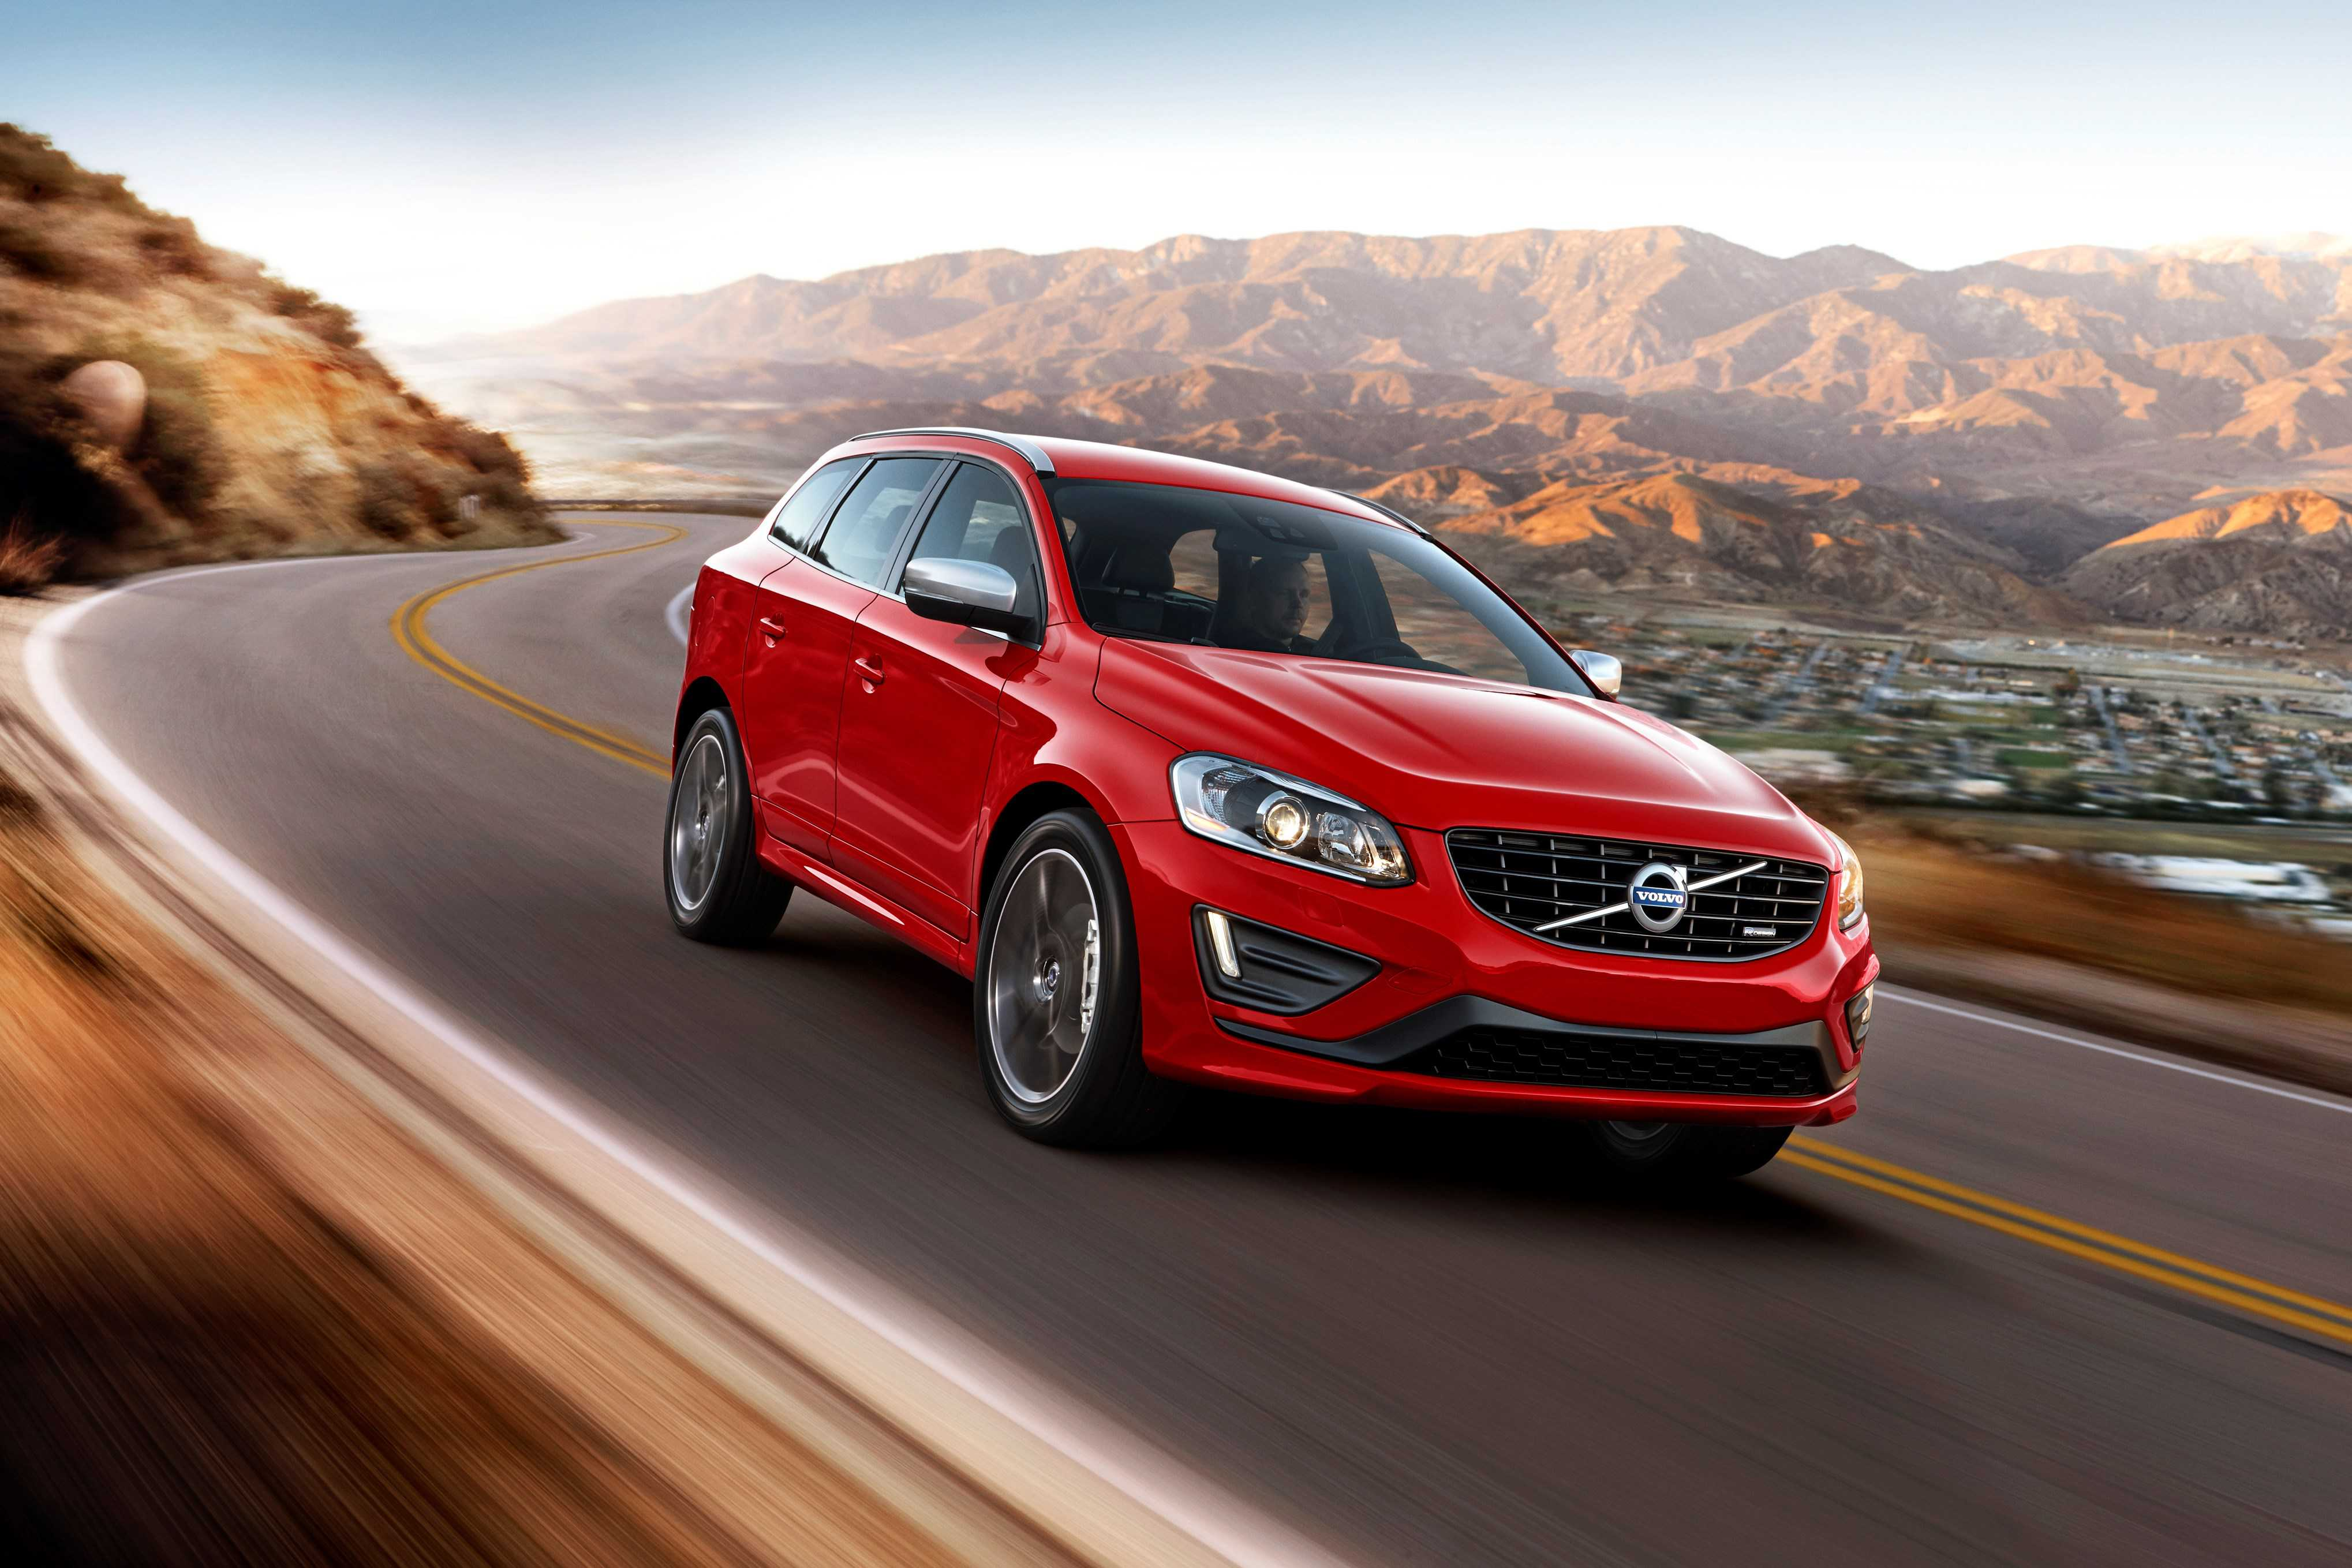 pine new auto date cost uk volvo awd grey aykam inscription price the hr release in